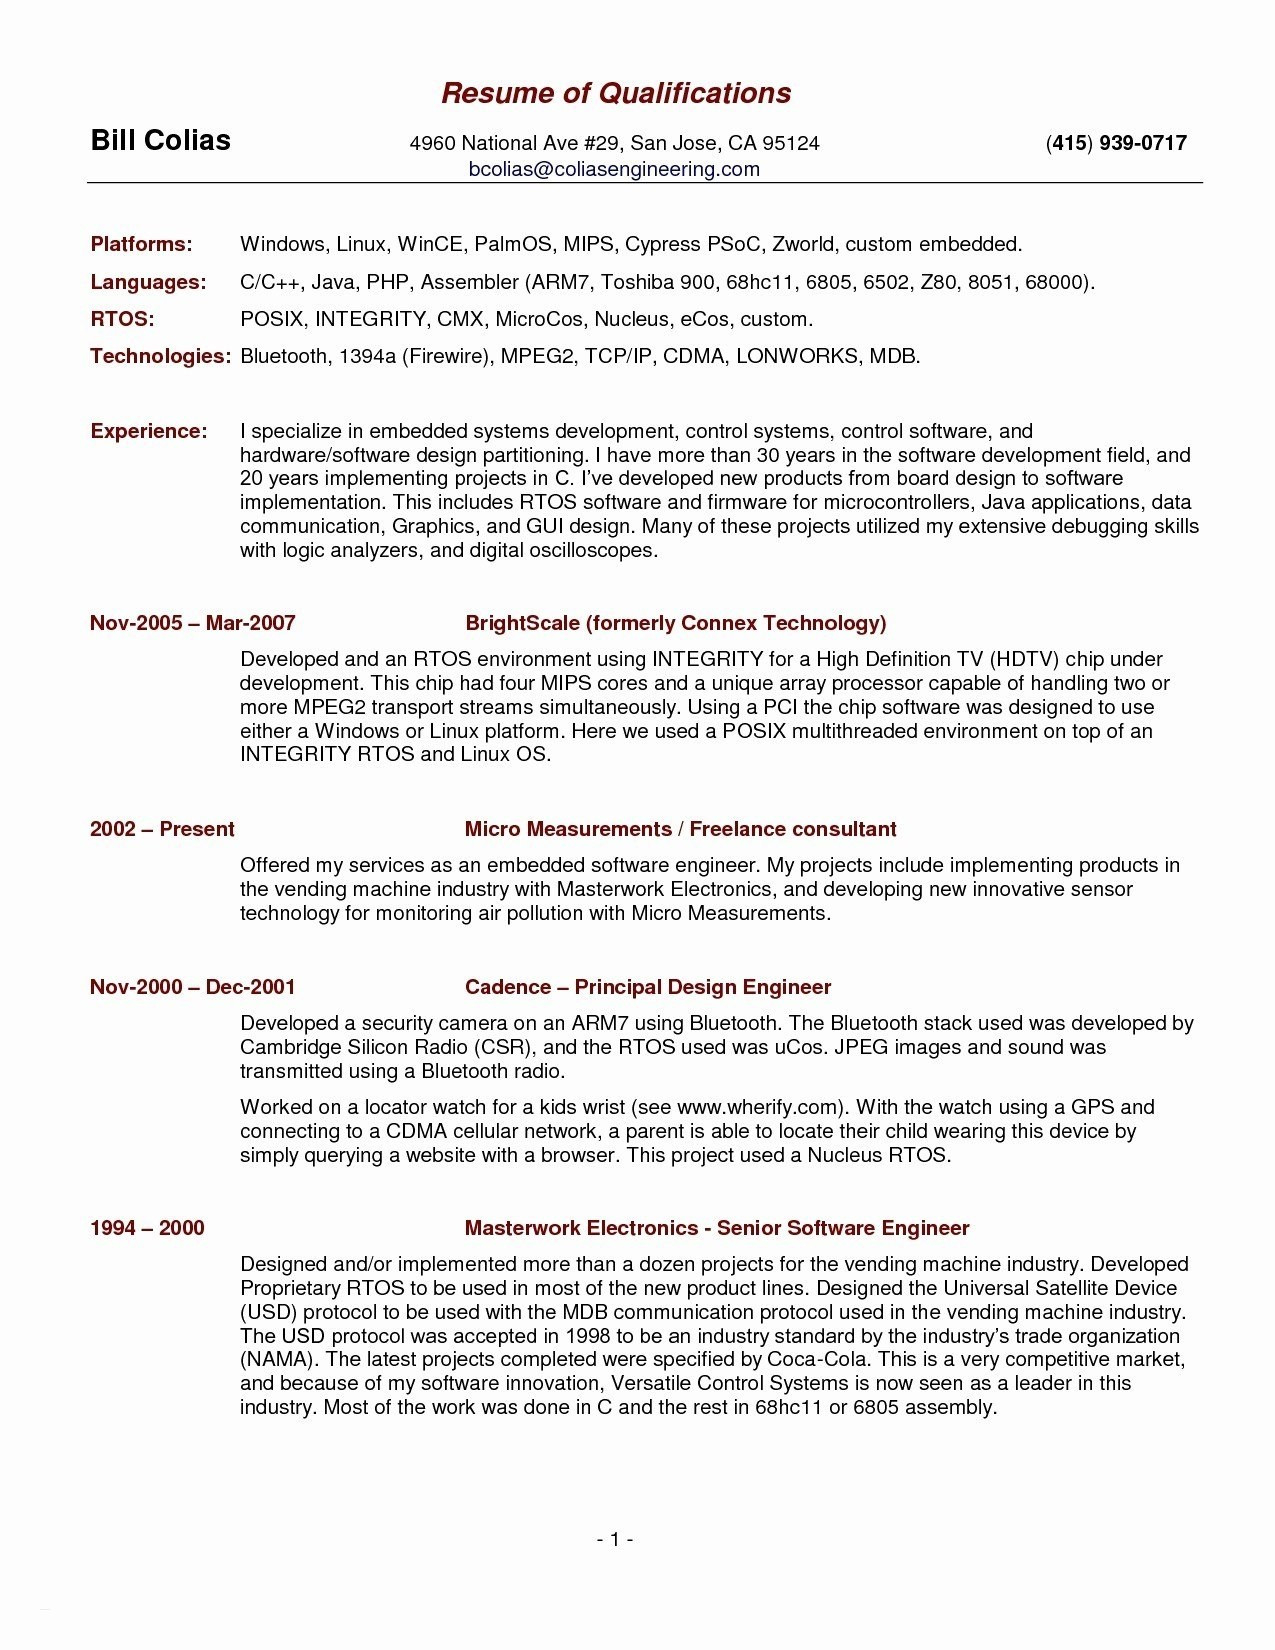 Is Resume now Free - Free Resume Builder Template Download Inspirational Easy Resume